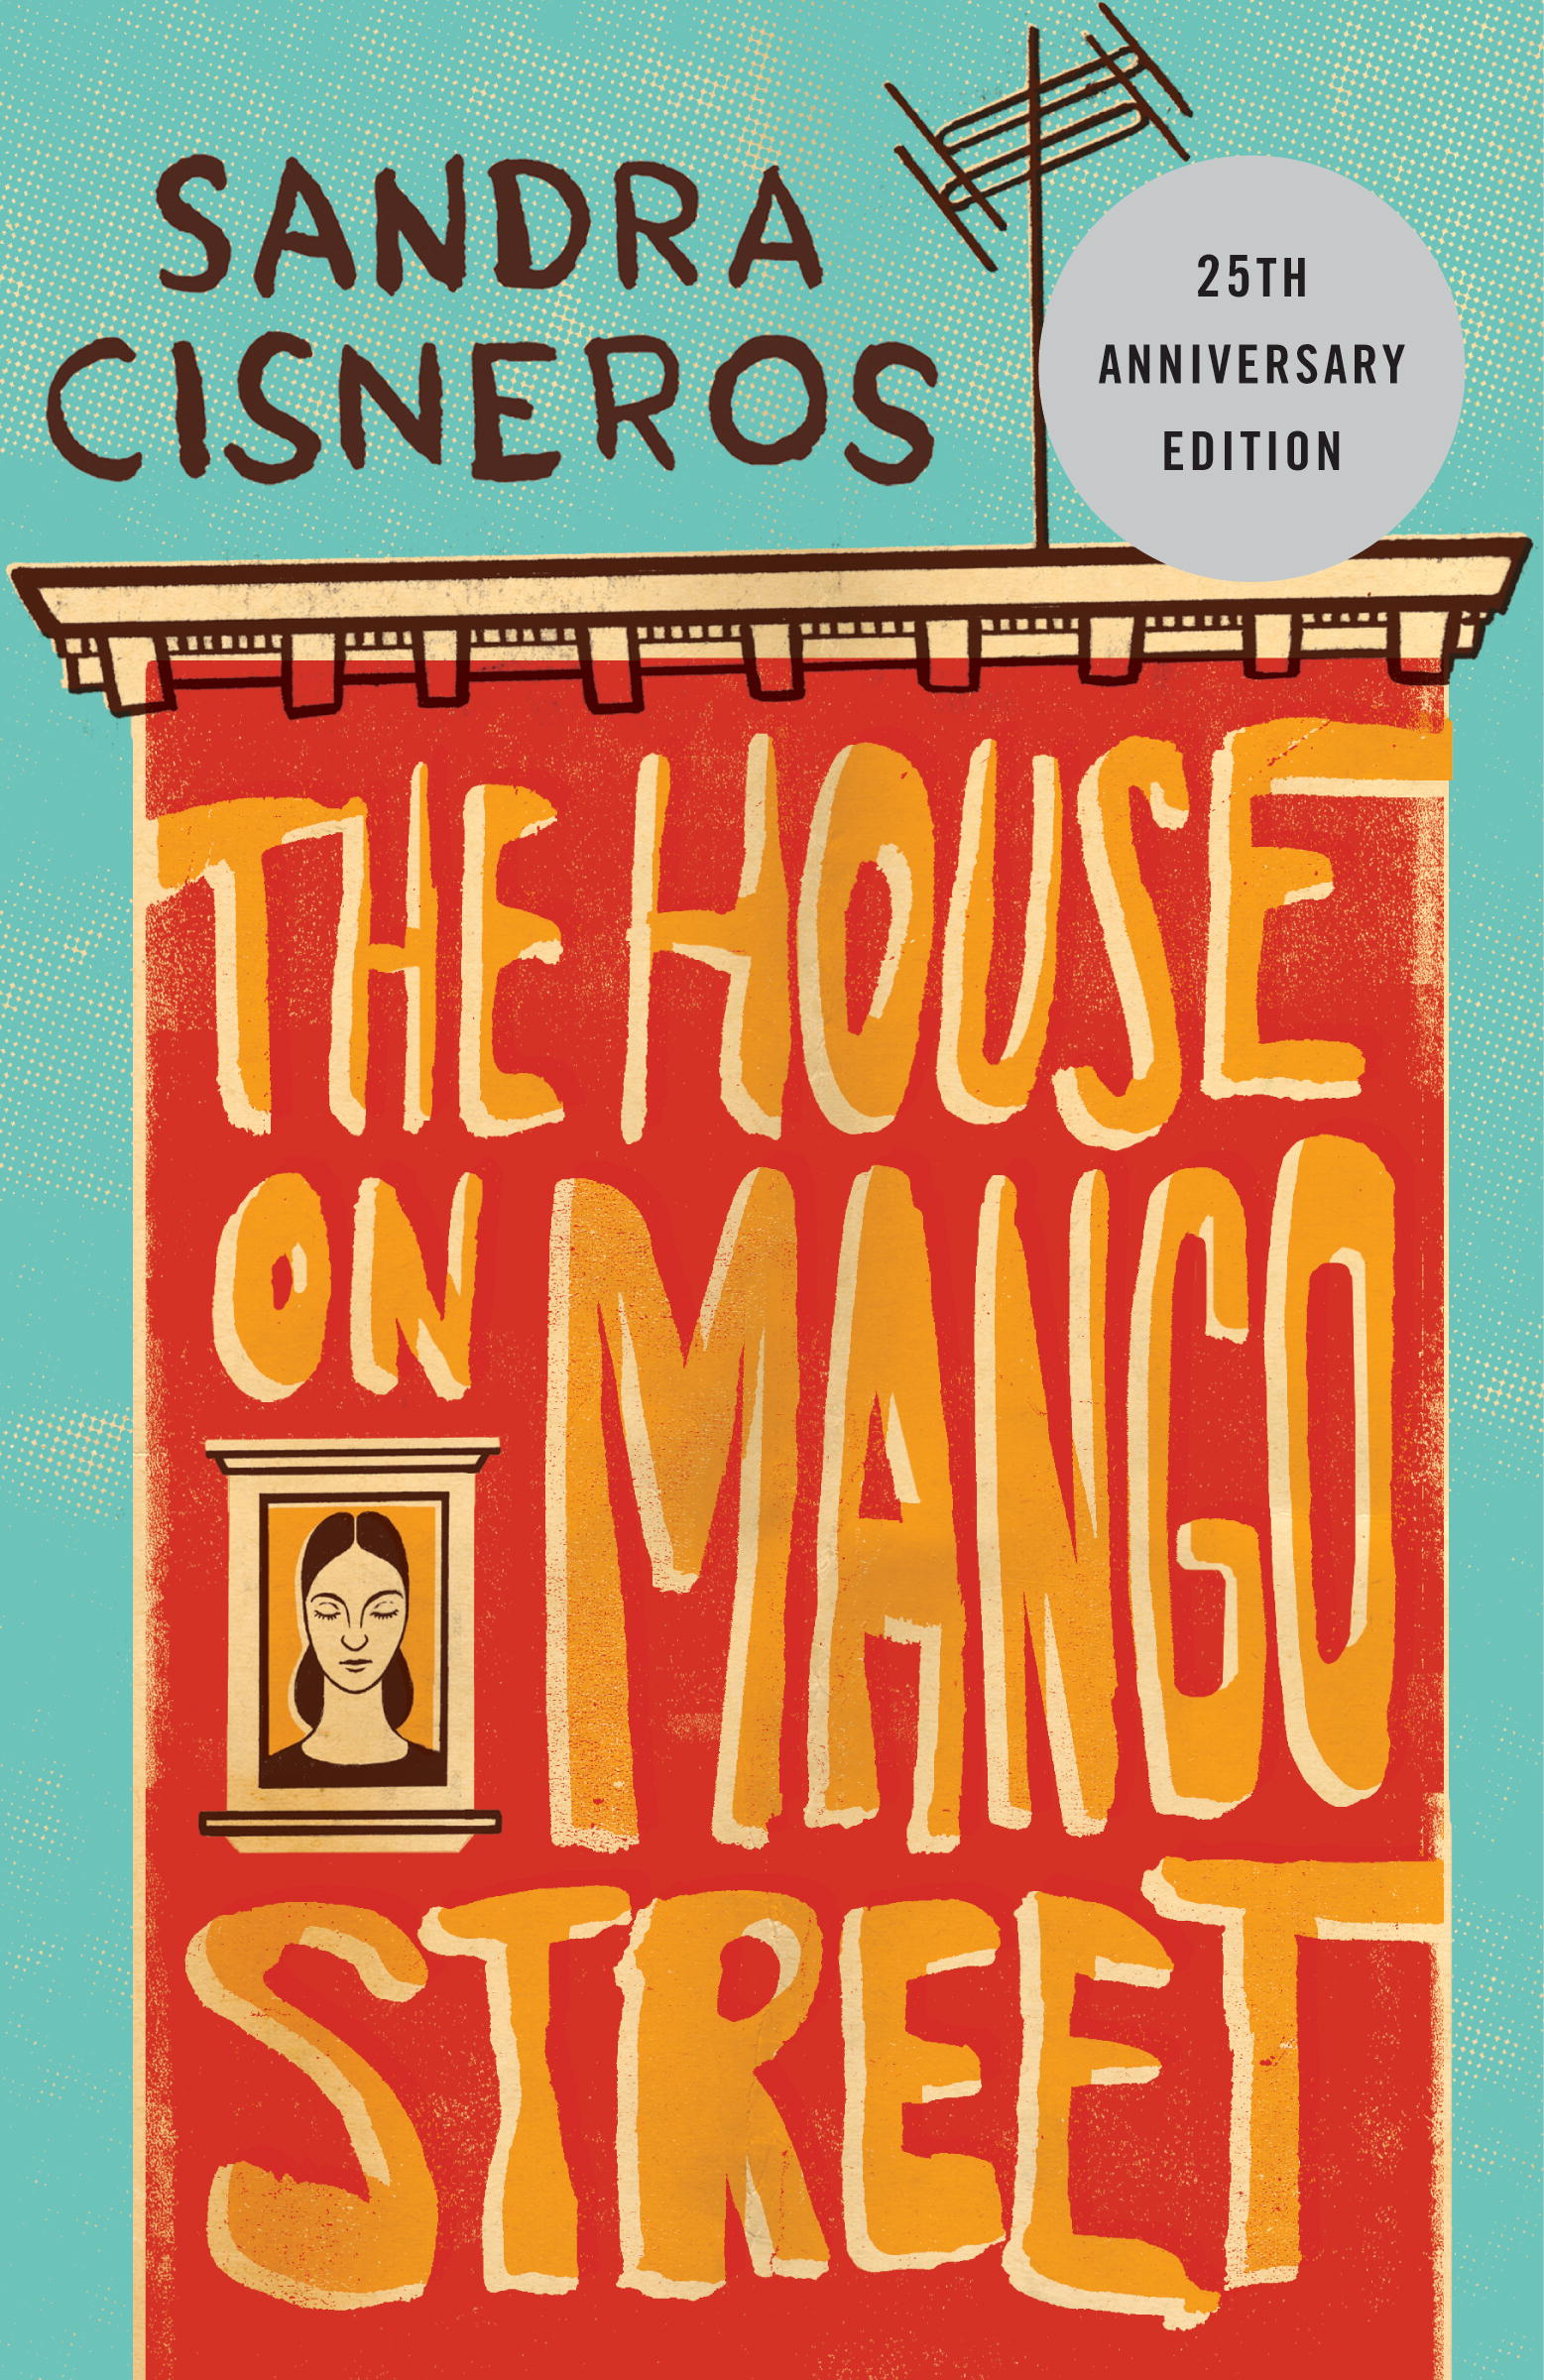 classic book review sandra cisneros ldquo the house on mango street classic book review sandra cisneros ldquothe house on mango streetrdquo